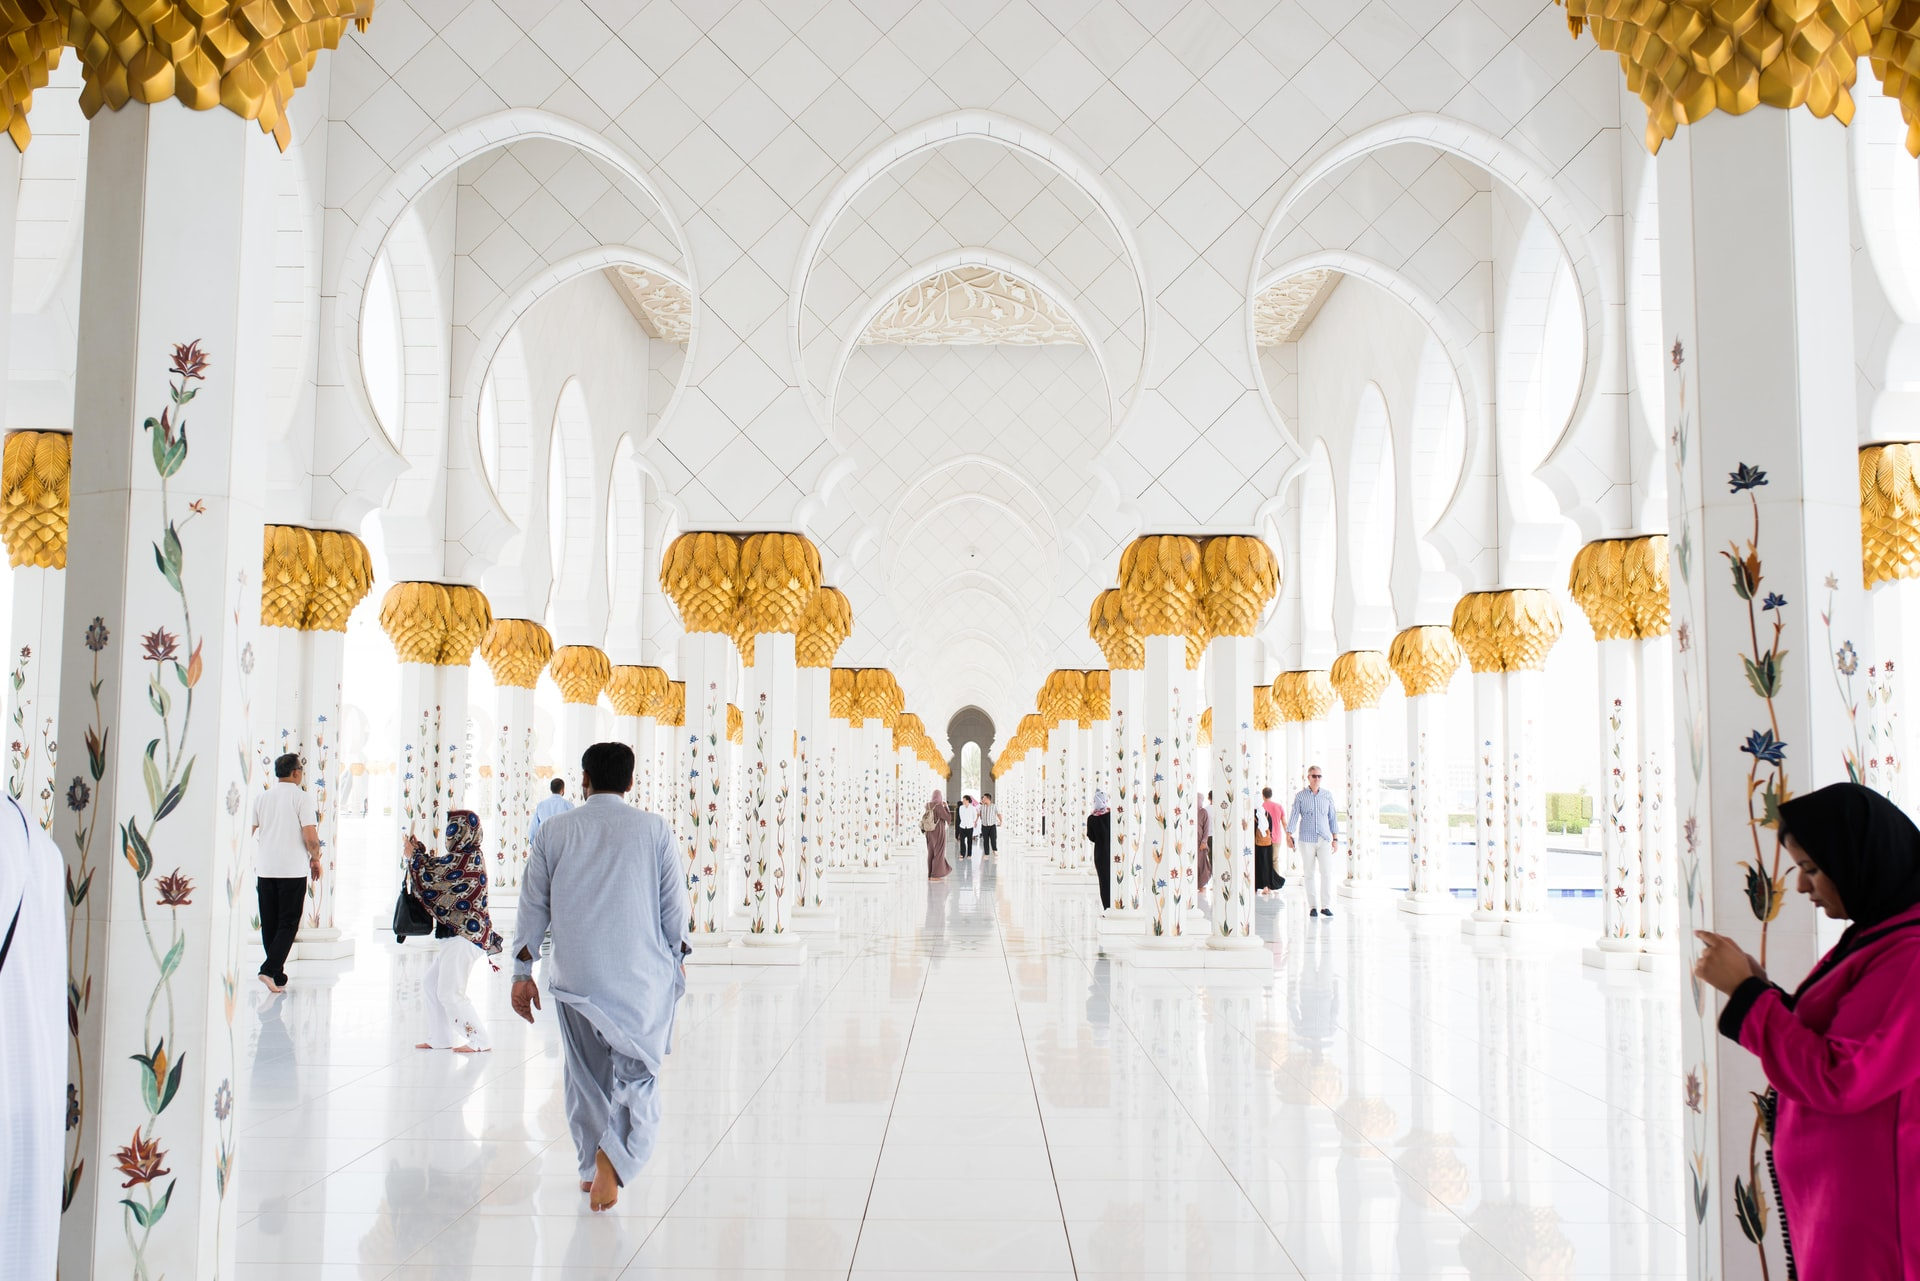 A Guide to Sightseeing in Abu Dhabi